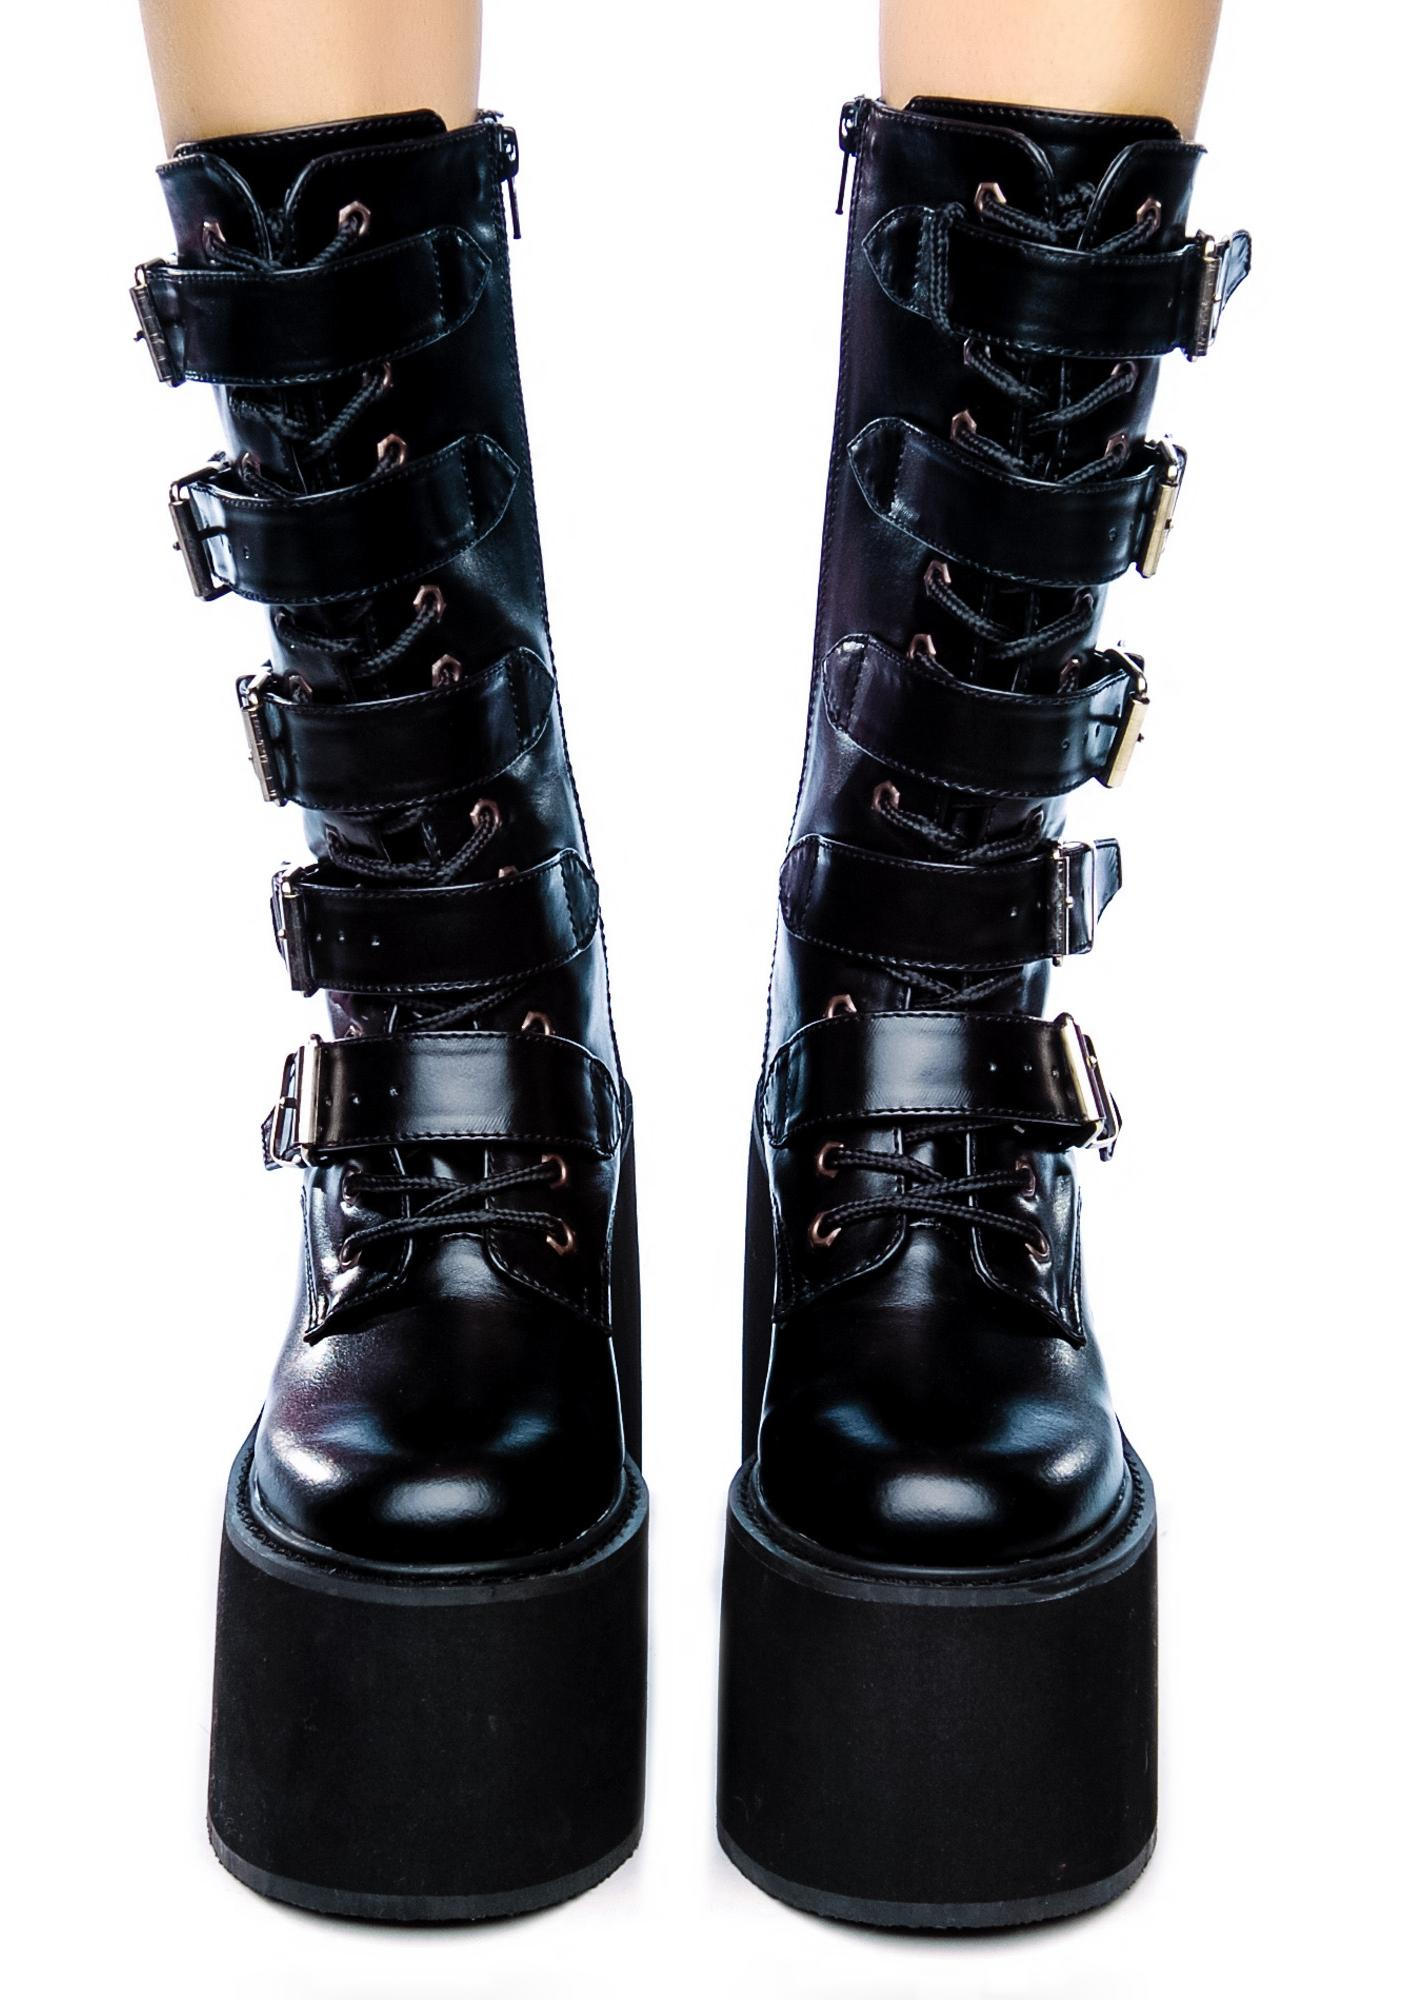 When your looking for sexy boots and some extra height, check out our knee-high platform boots, high heel platform boots, ankle high heel platform boots, fur platform boots and more.